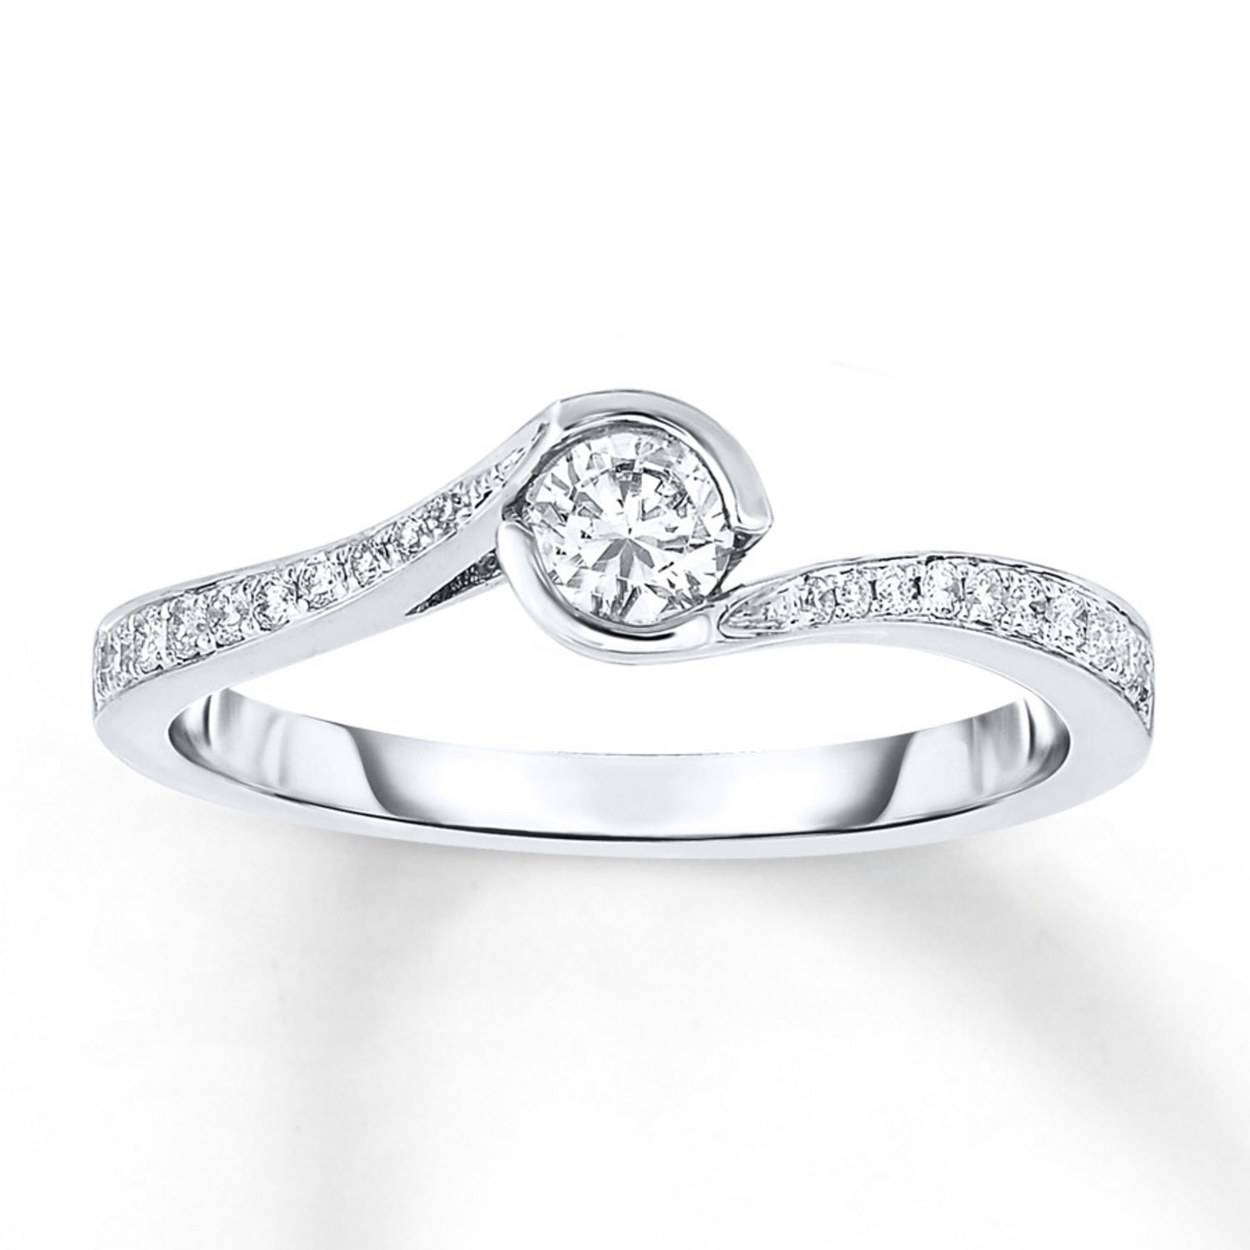 Affordable Engagement Rings Under $1,000 | Glamour Pertaining To Wedding Rings With Engagement Rings (View 2 of 15)